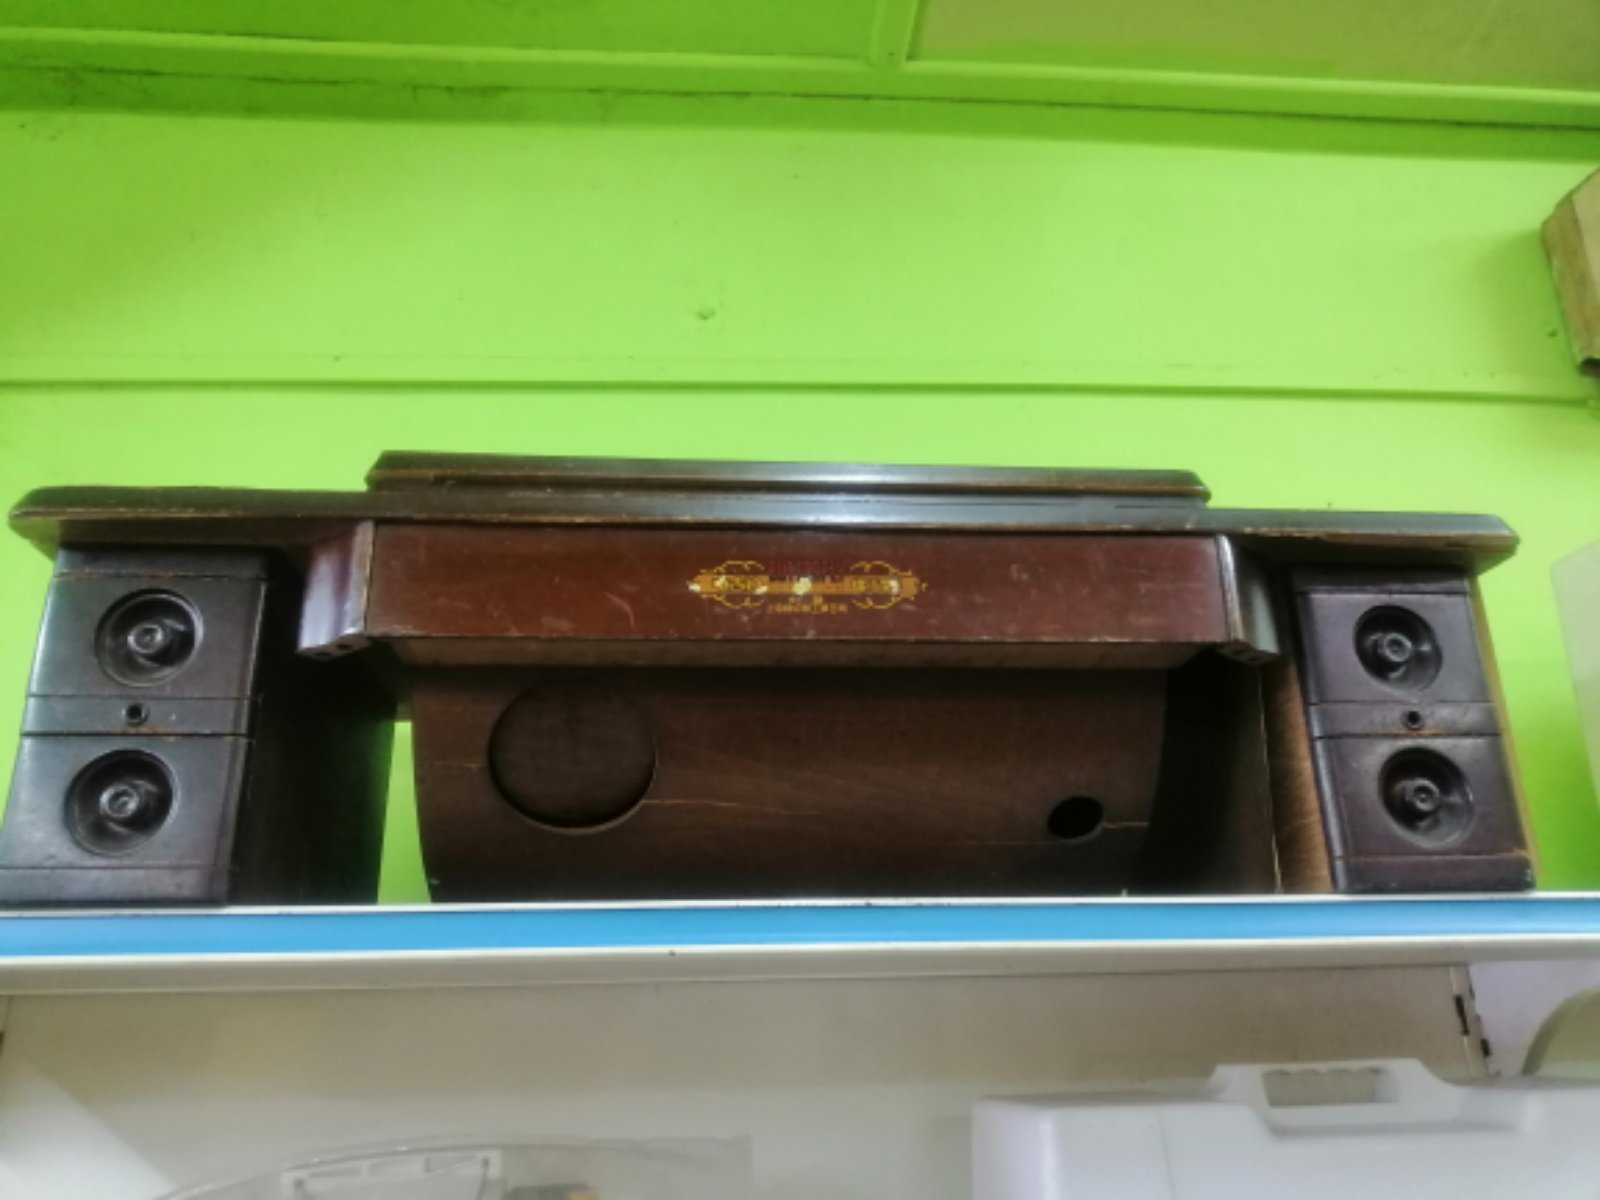 Second Hand Ha Antique Table Sewing Machine